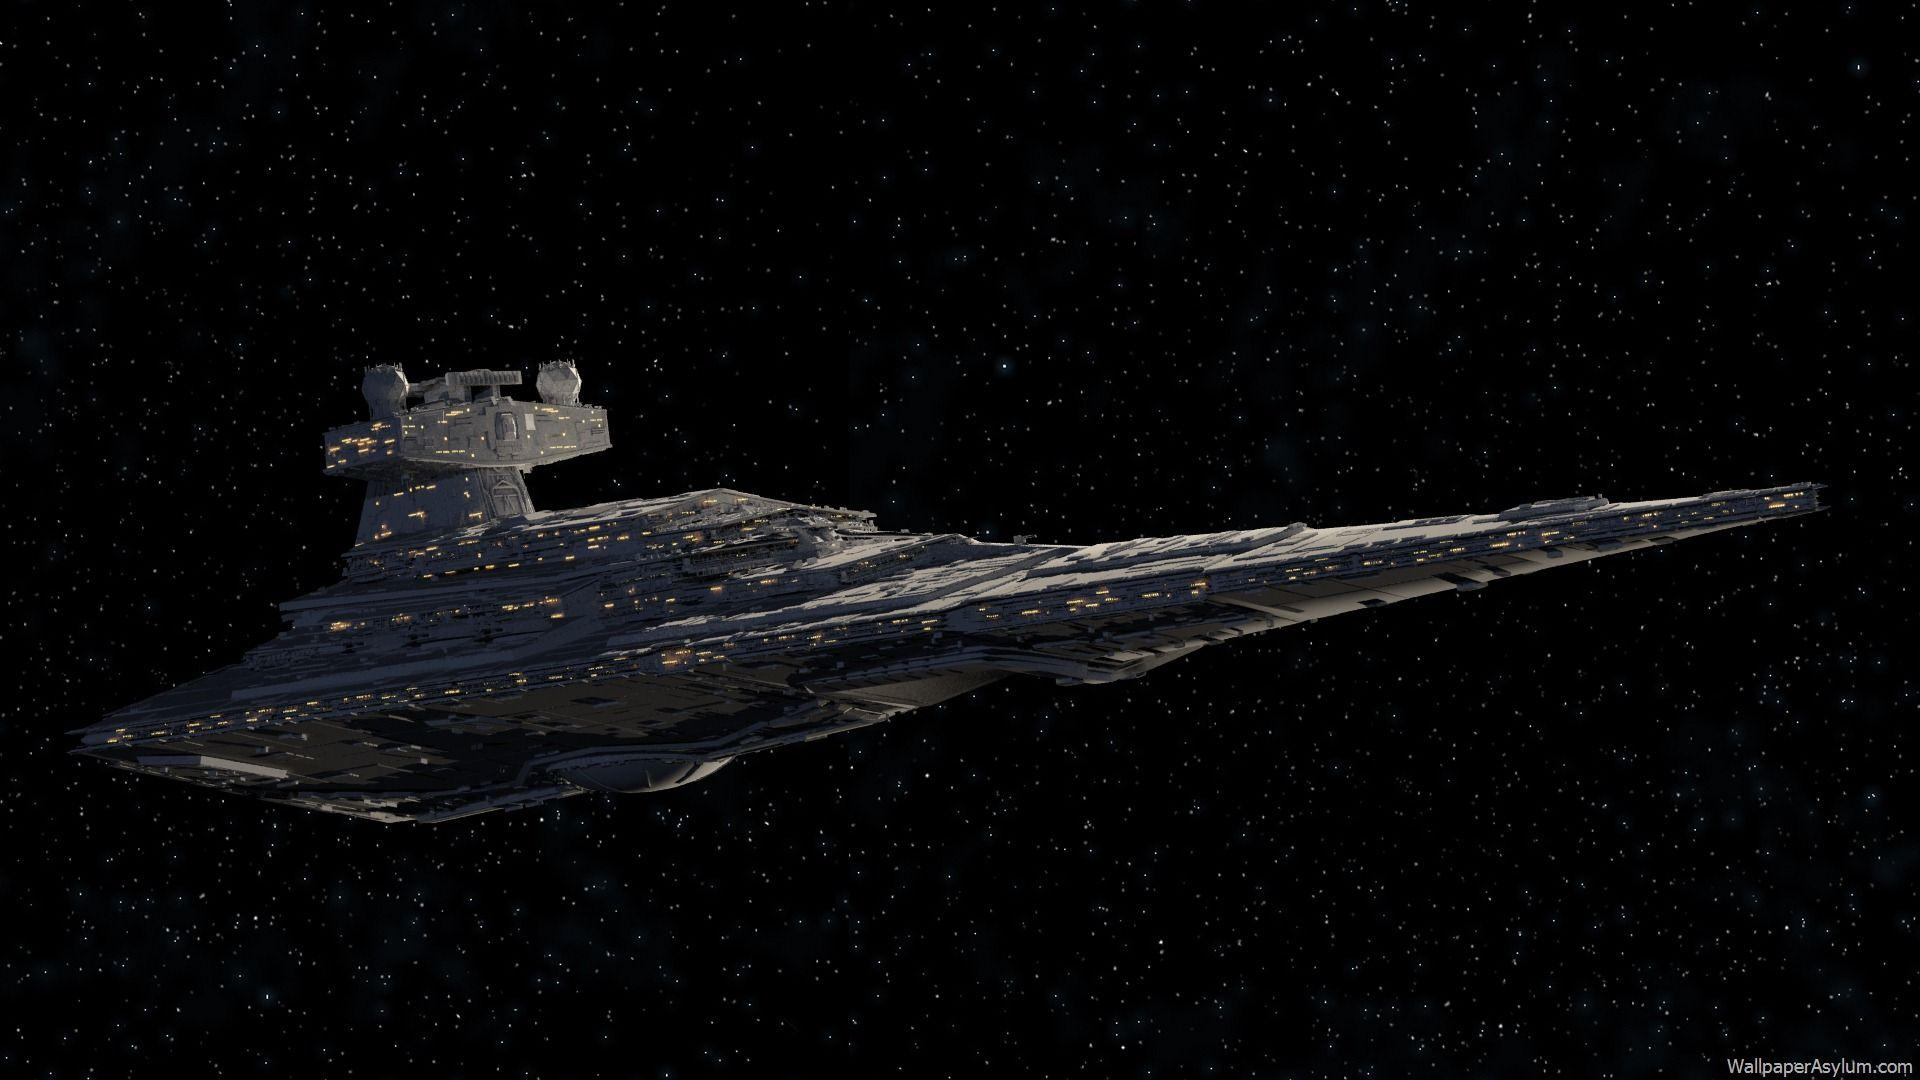 Star Destroyer Wallpapers Wallpaper Cave